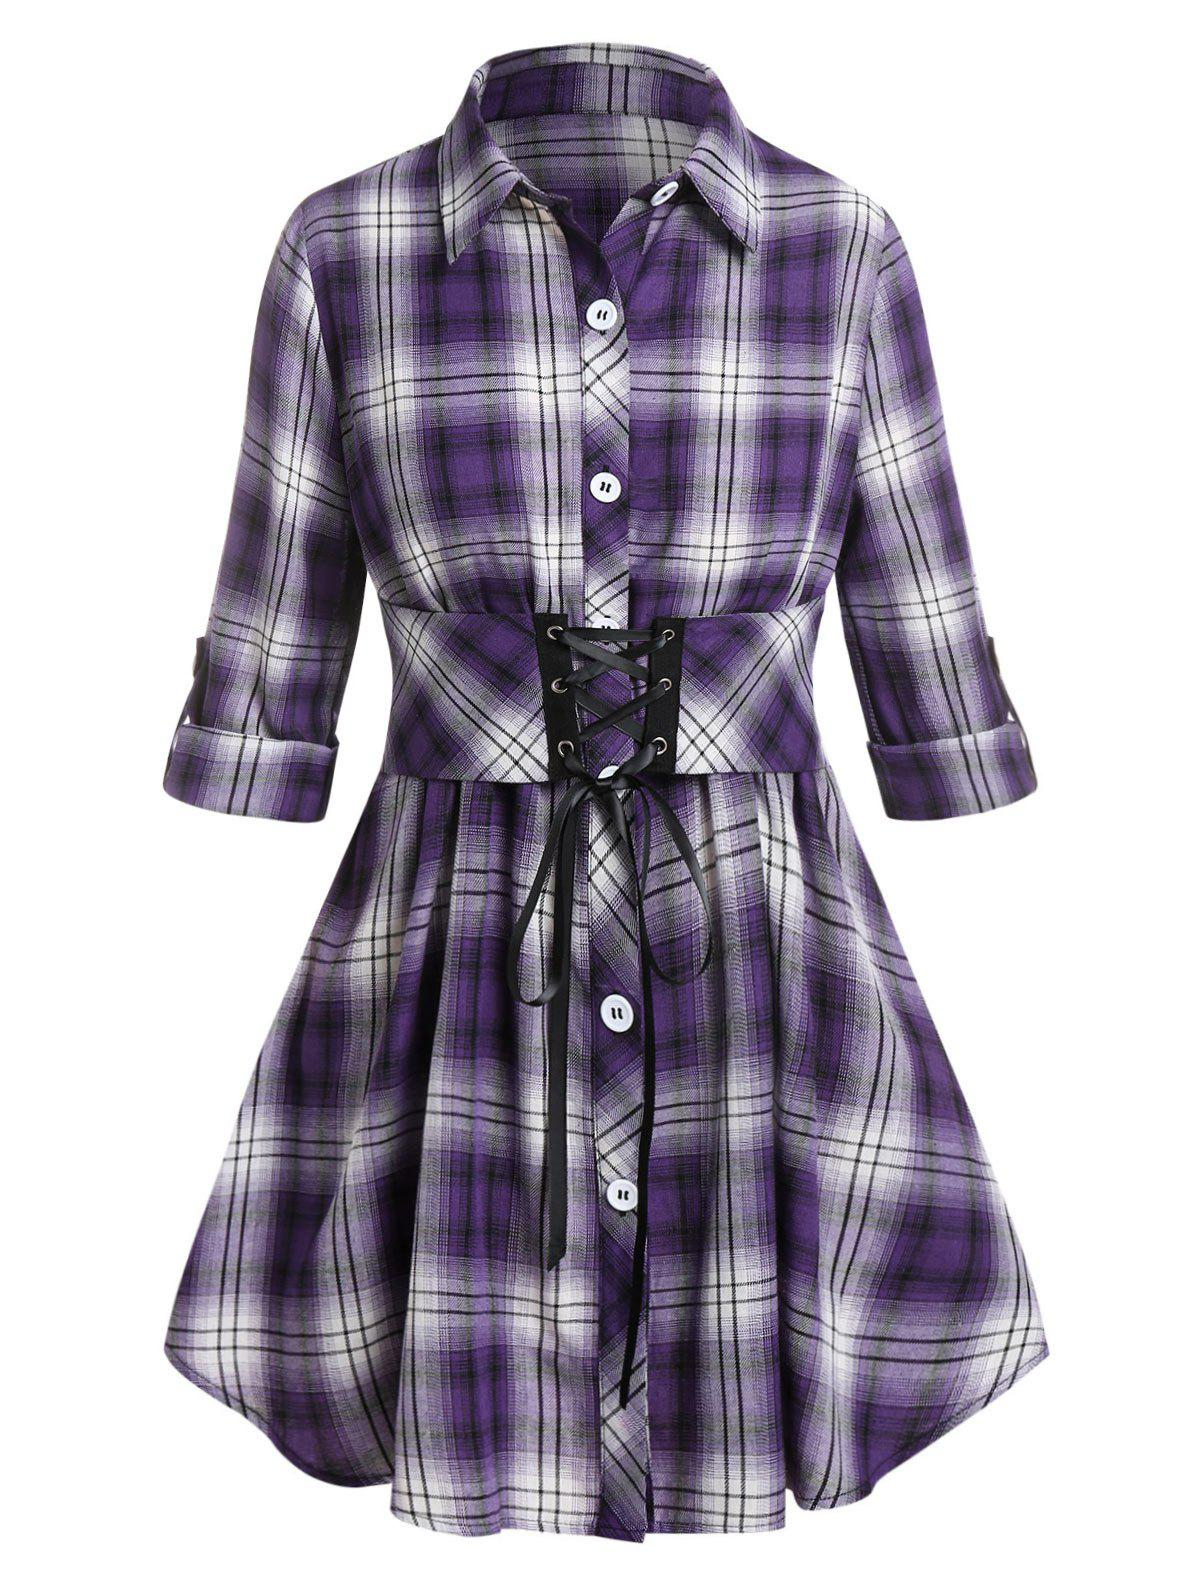 Plus Size Plaid Lace-up Roll Up Sleeve Blouse - CONCORD 5X